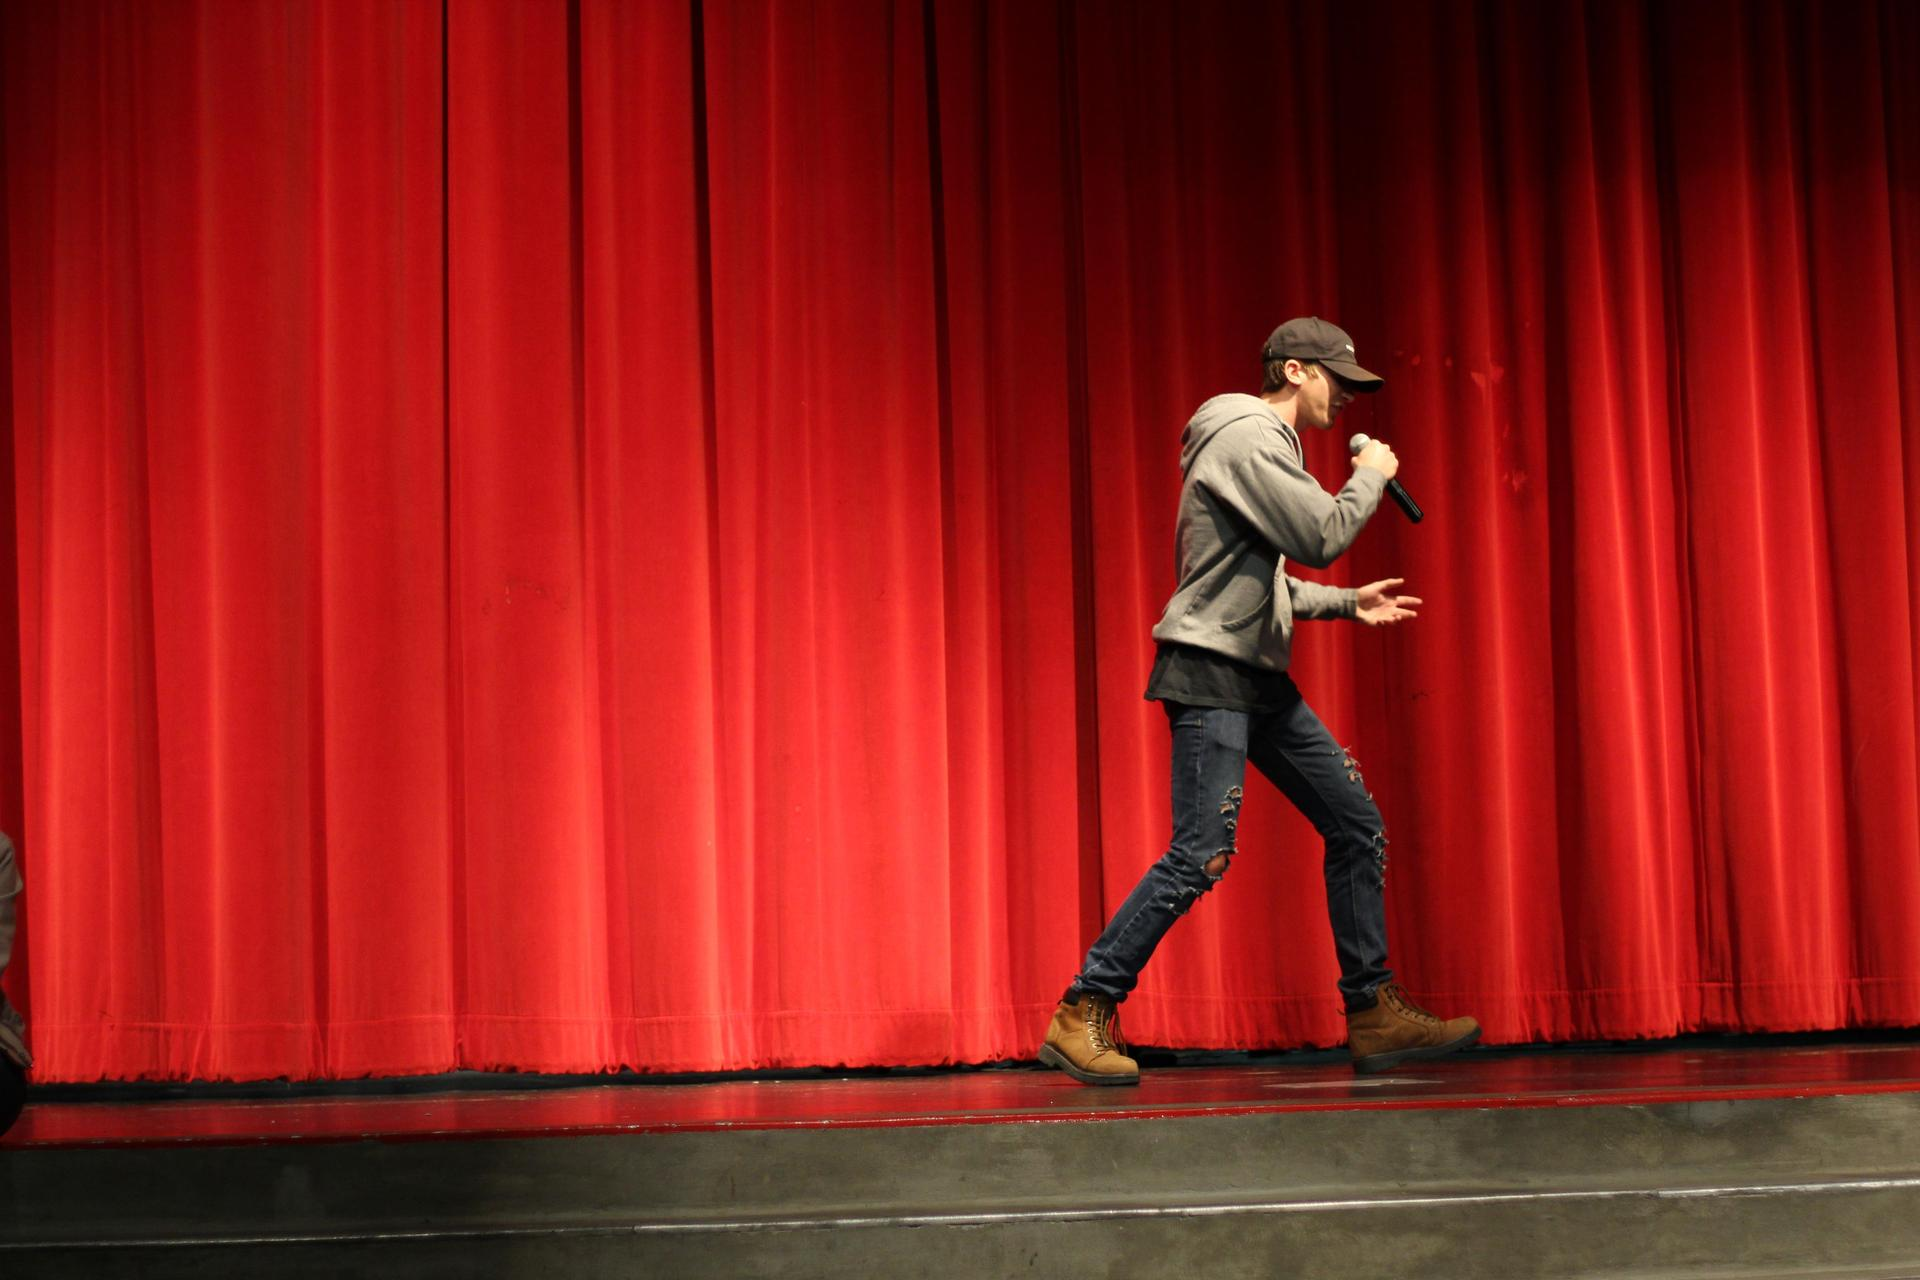 Michael Eggert performs his part of a duet with Sophia Atilano at the NSL Talent Show.